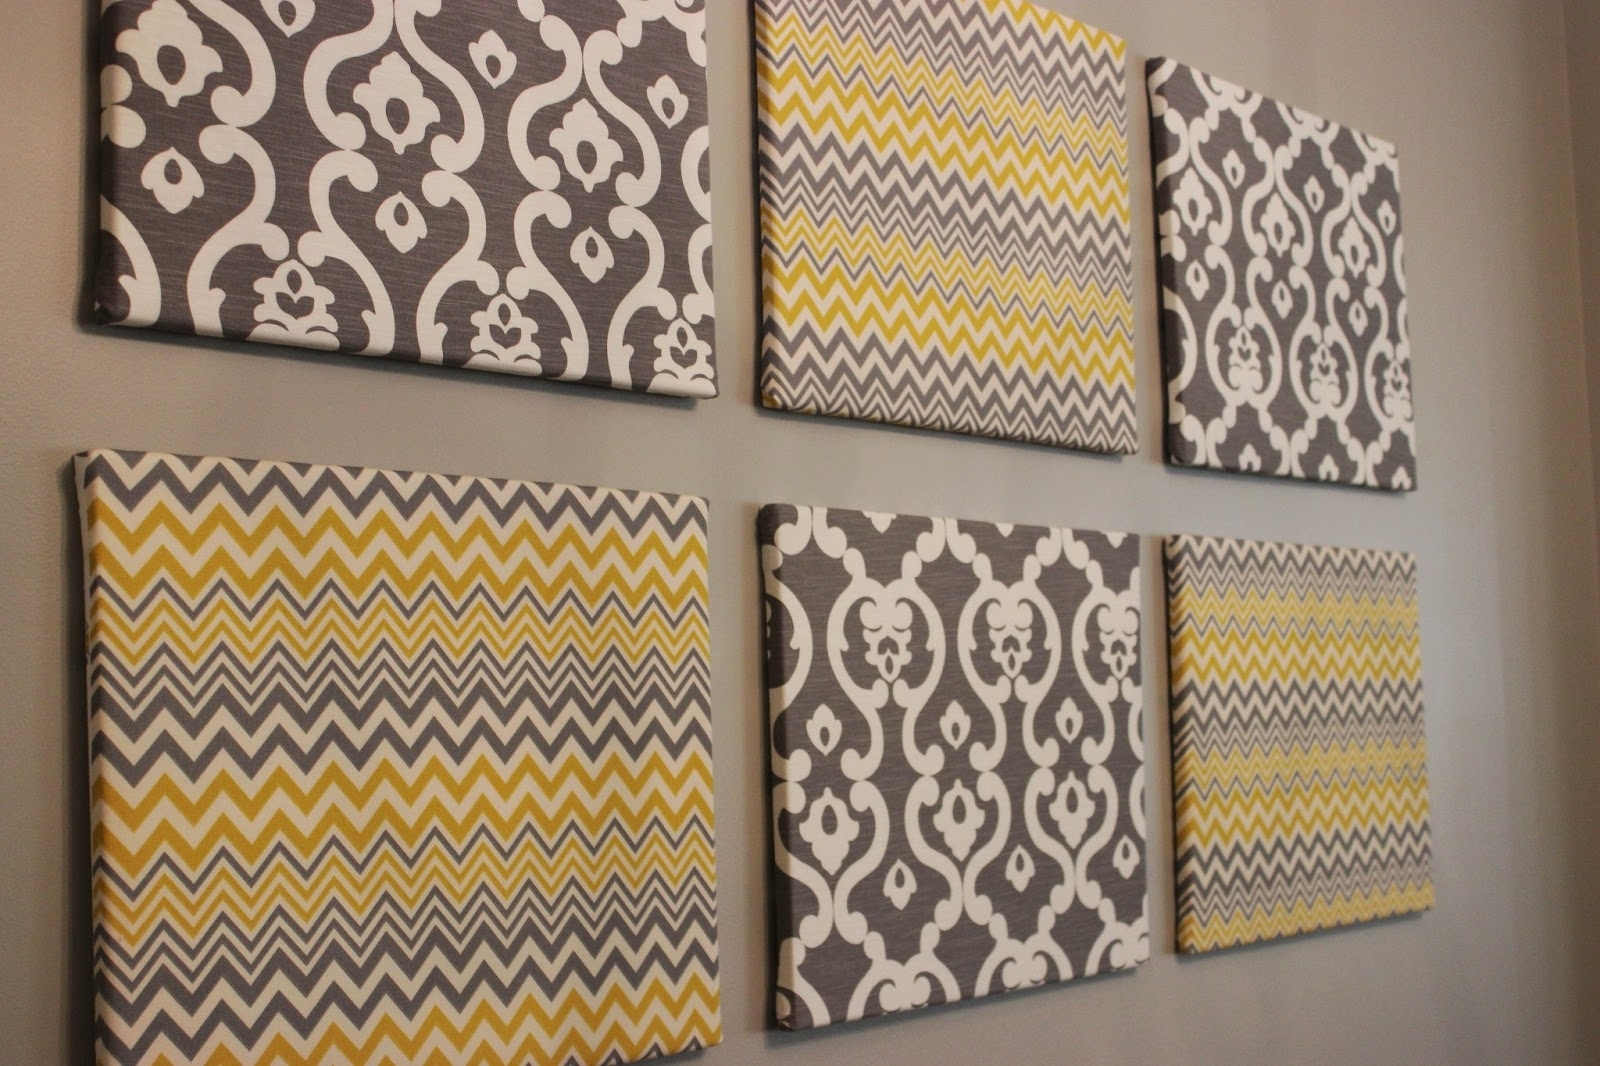 Diy Fabric Canvas Wall Art Regarding Popular Sleek Diy Wall Conquers Painted Canvas A Pop Plus Home Decorating (View 6 of 15)